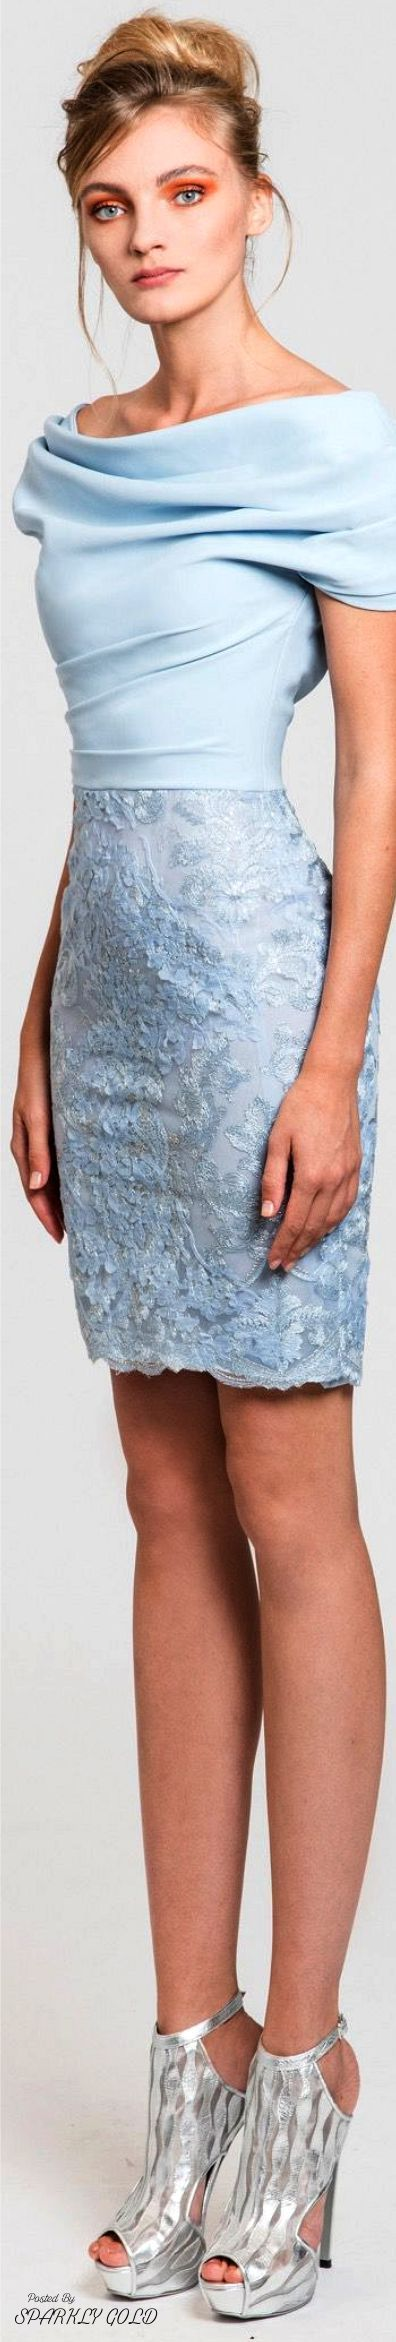 1000+ ideas about Ice Blue Dress on Pinterest